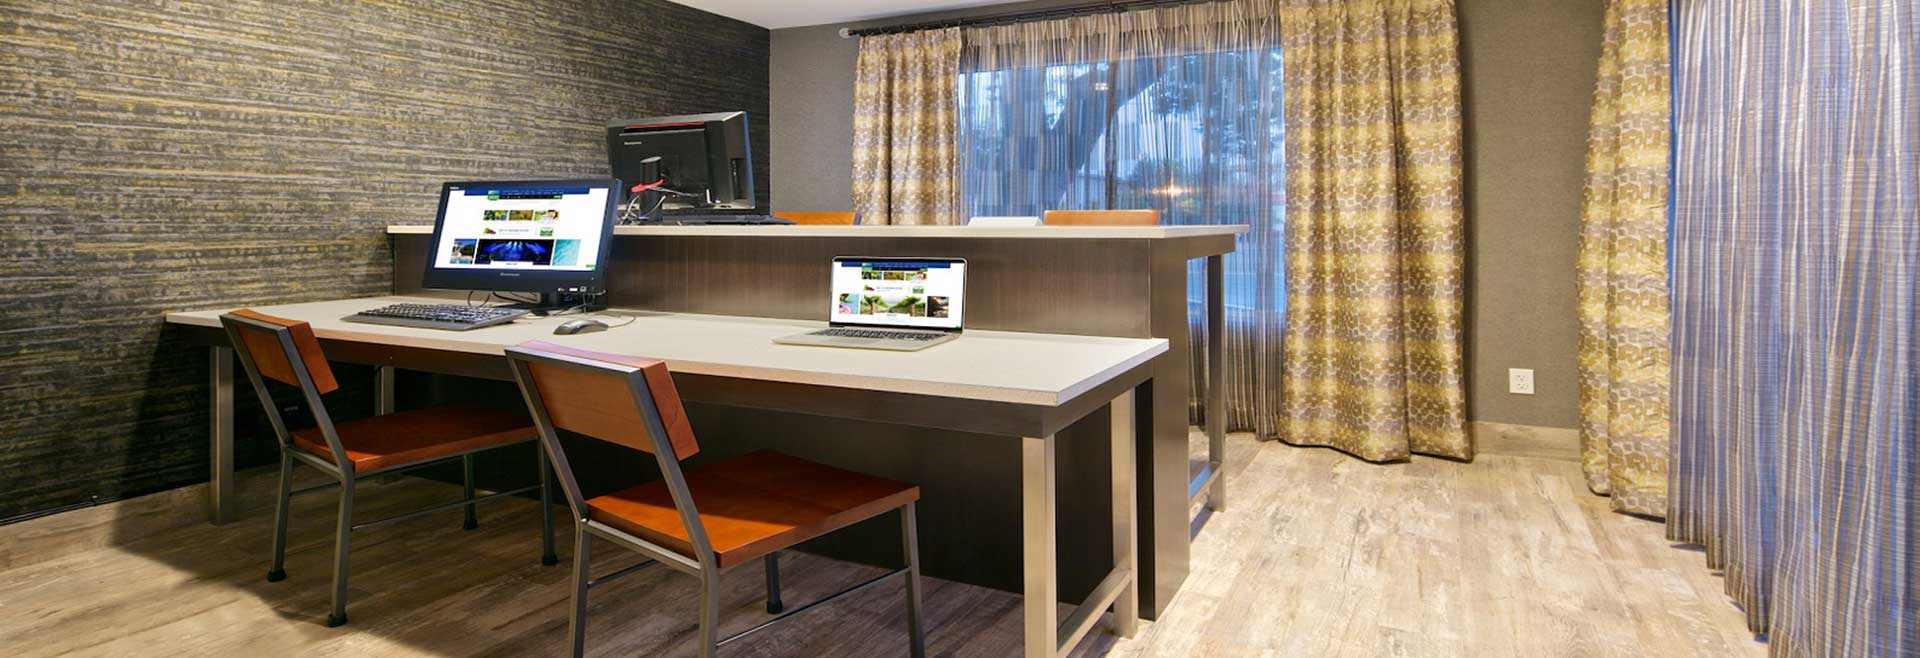 Holiday Inn Express Hotel & Suites - Paso Robles Services at California